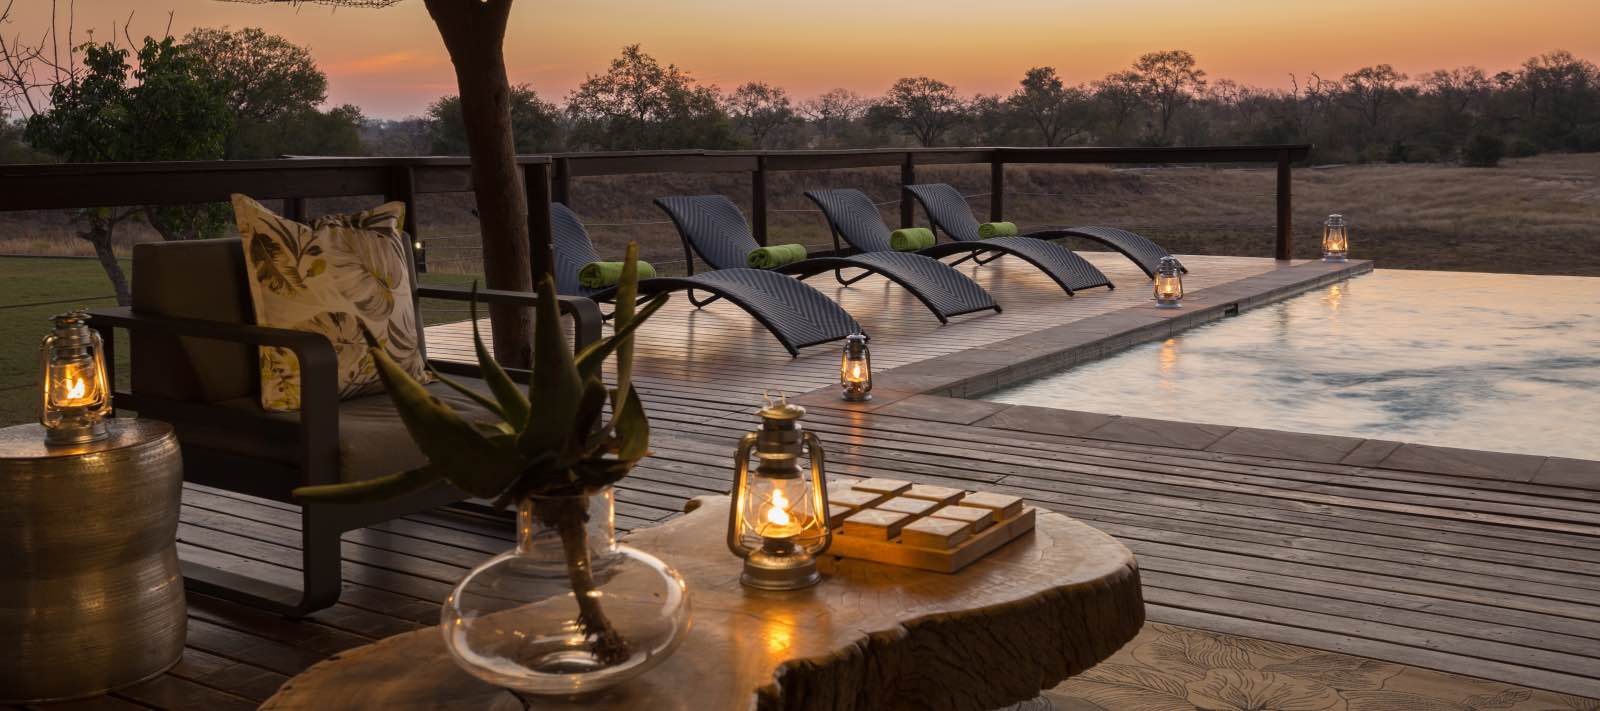 Sunset at the infinity pool, watching the activity on the open plain at Arathusa Safari Lodge